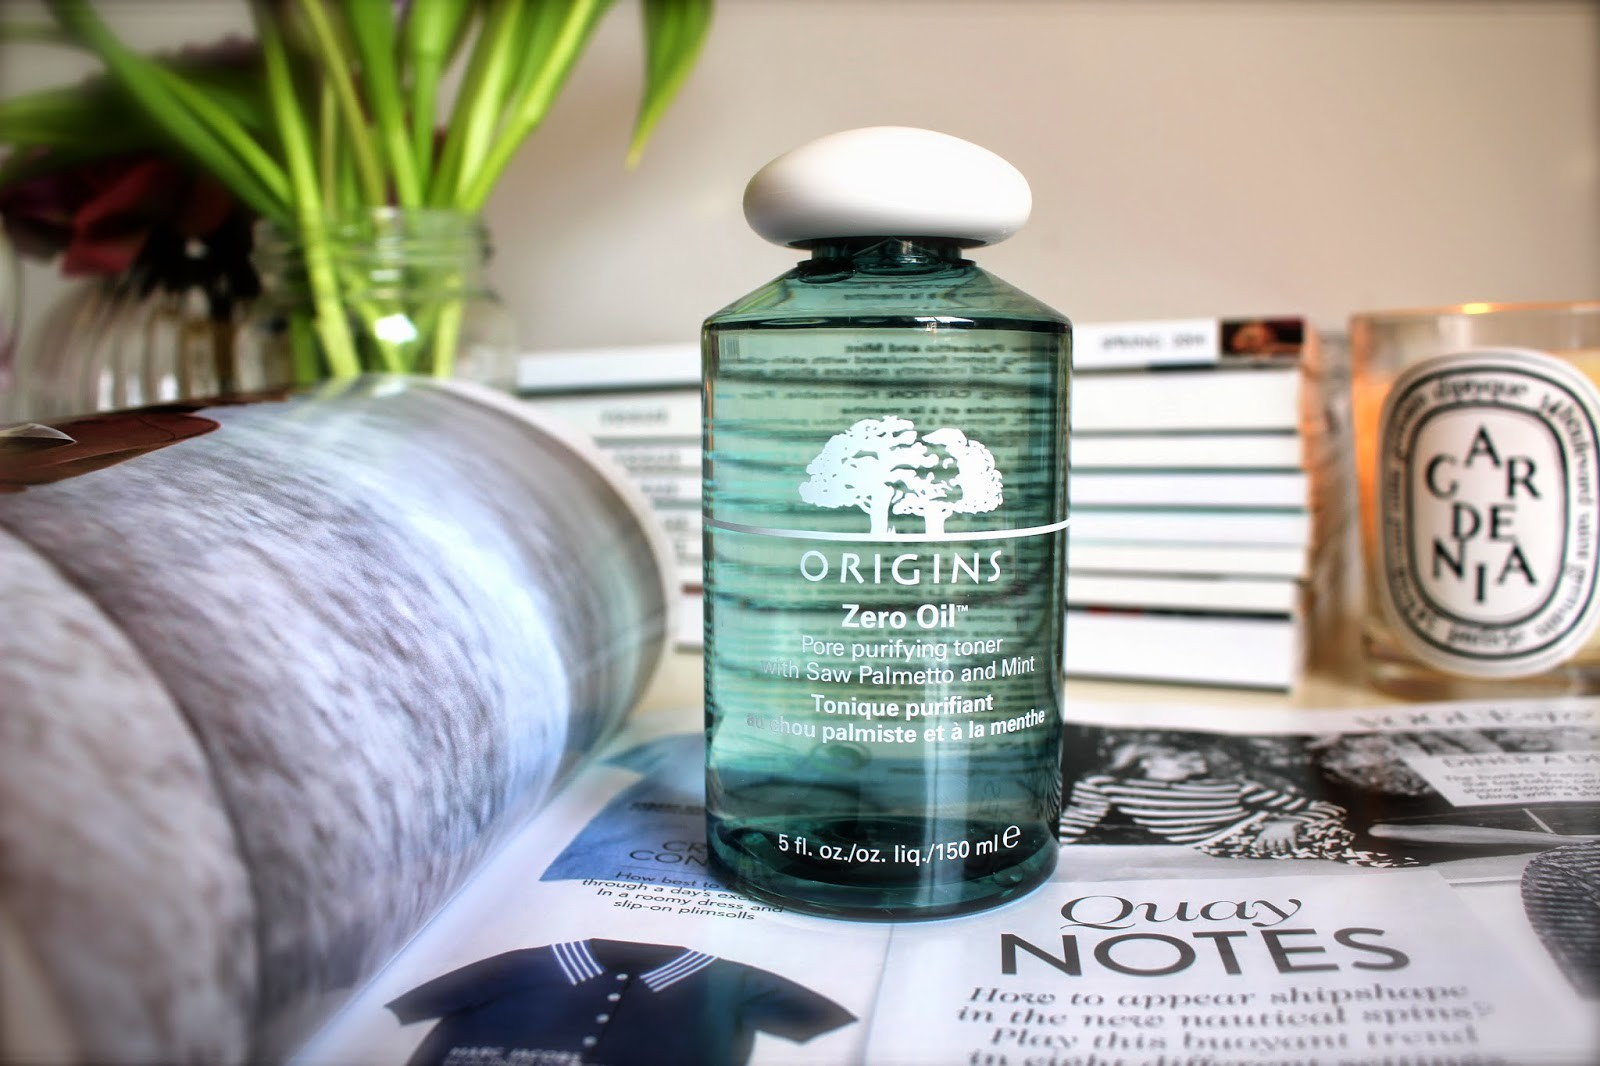 Origins Zero Oil Pore Purifying Toner - Review on Fashion Mumblr